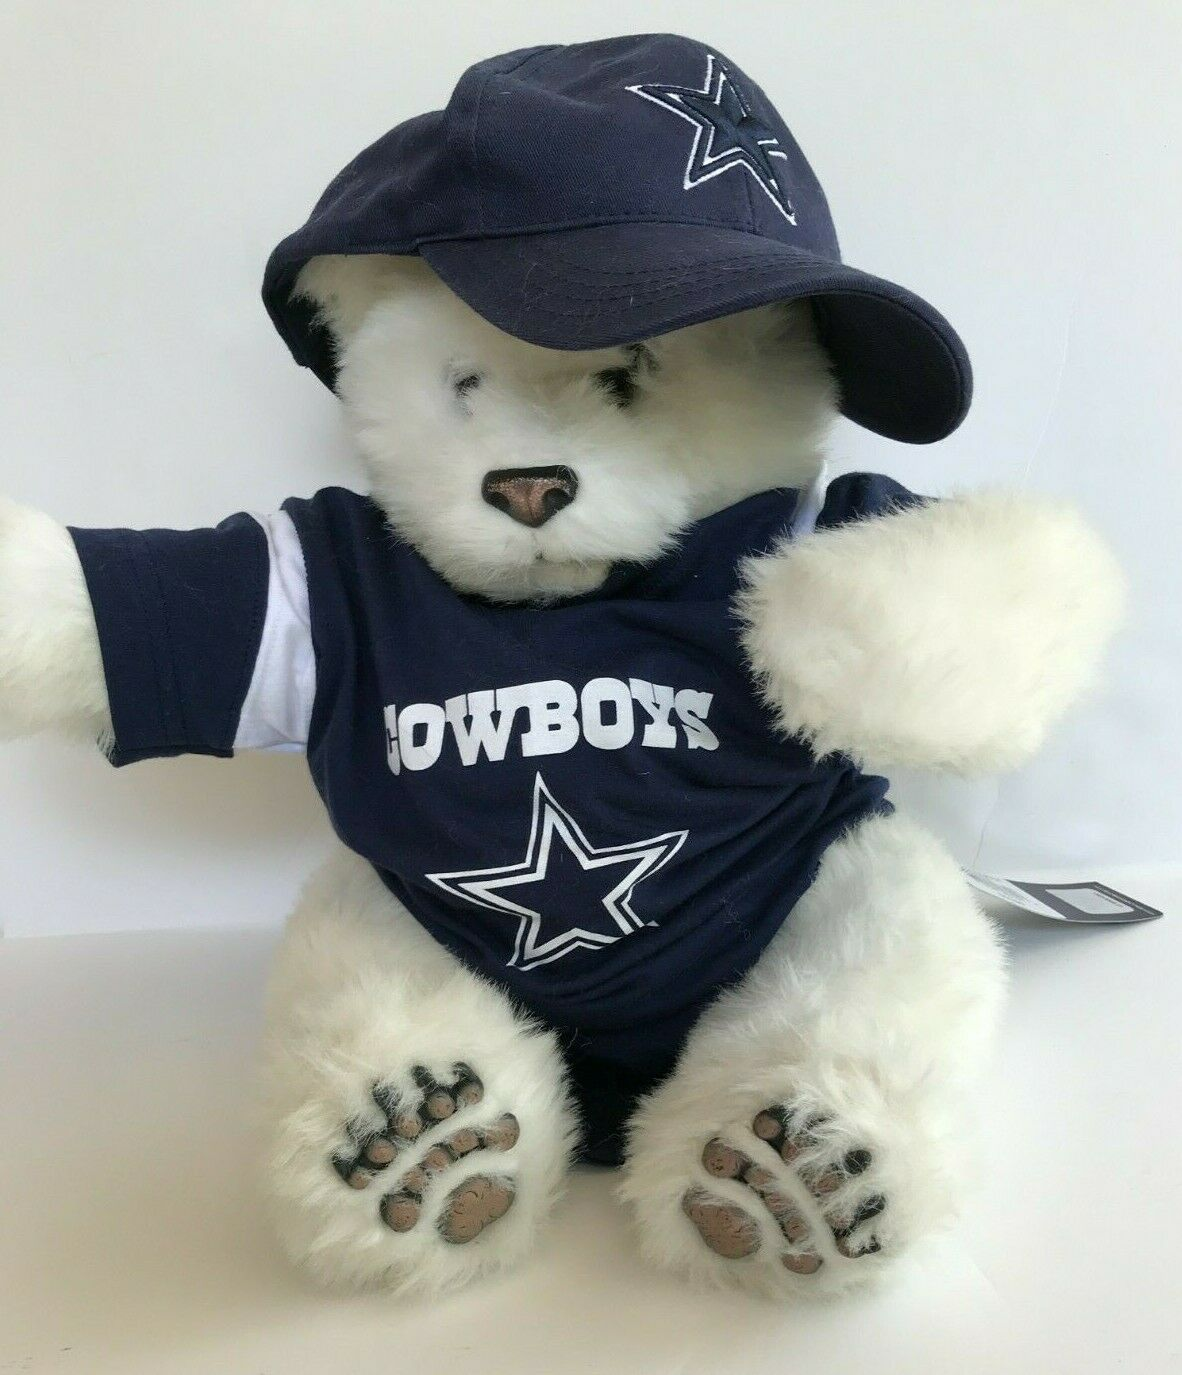 Polar Bear Electronics Motion with Dallas Cowboys Outfit and Cap - $58.50